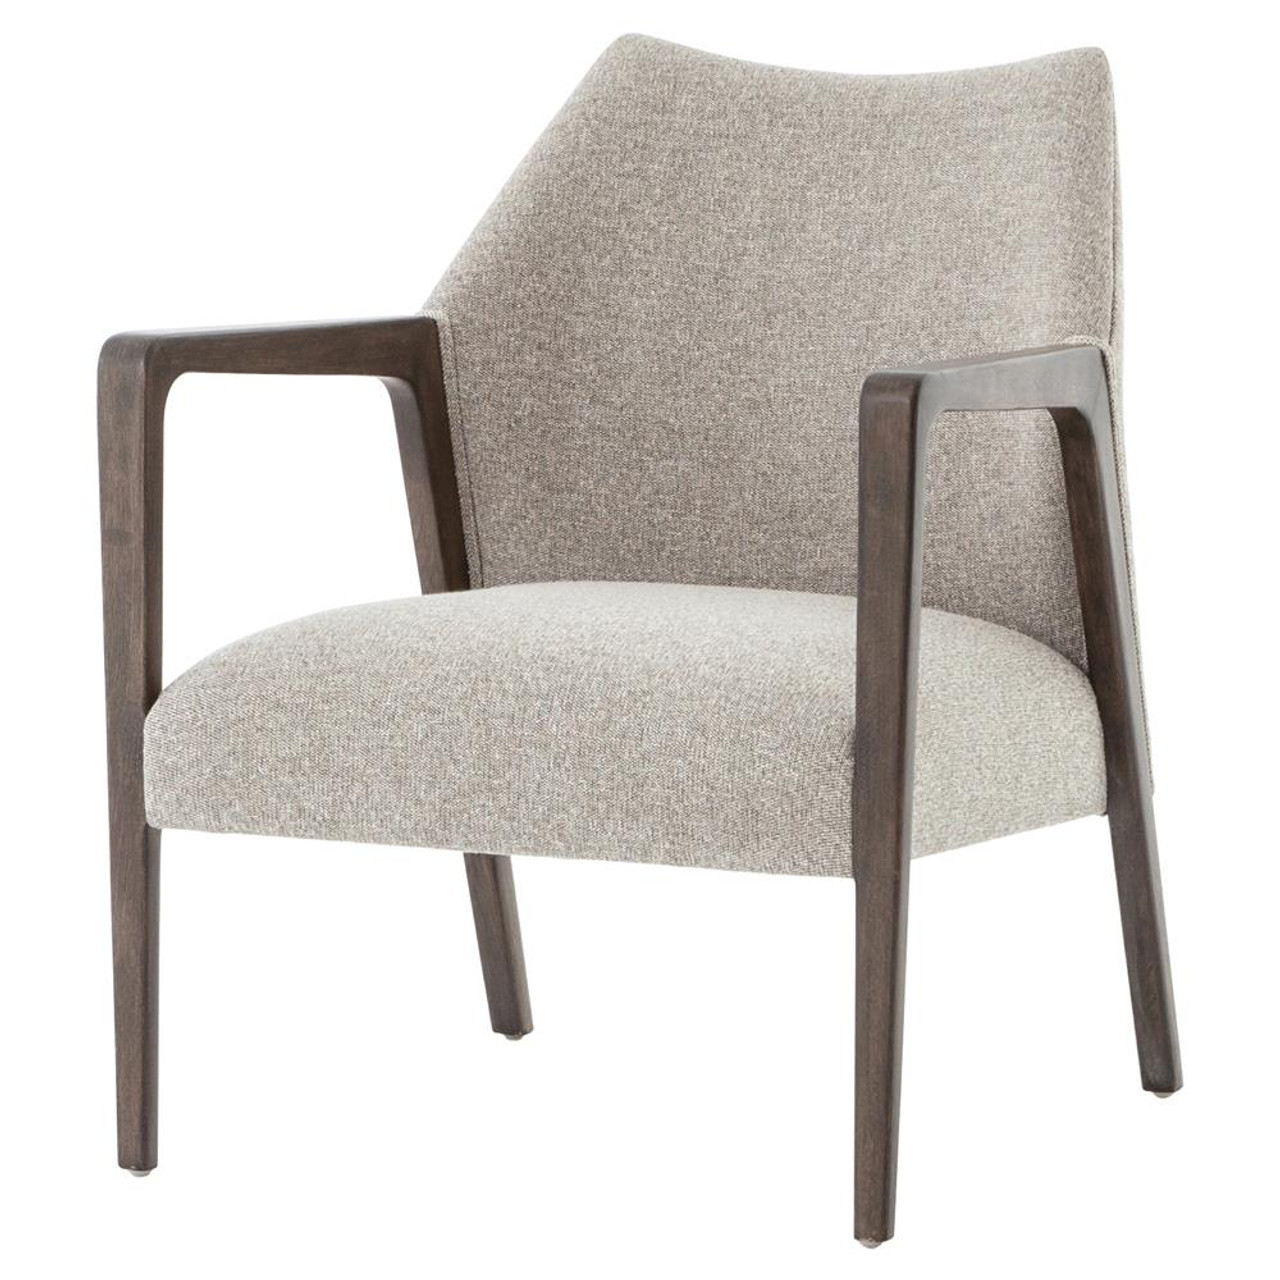 Dalton Mid Century Modern Upholstered Accent Chair